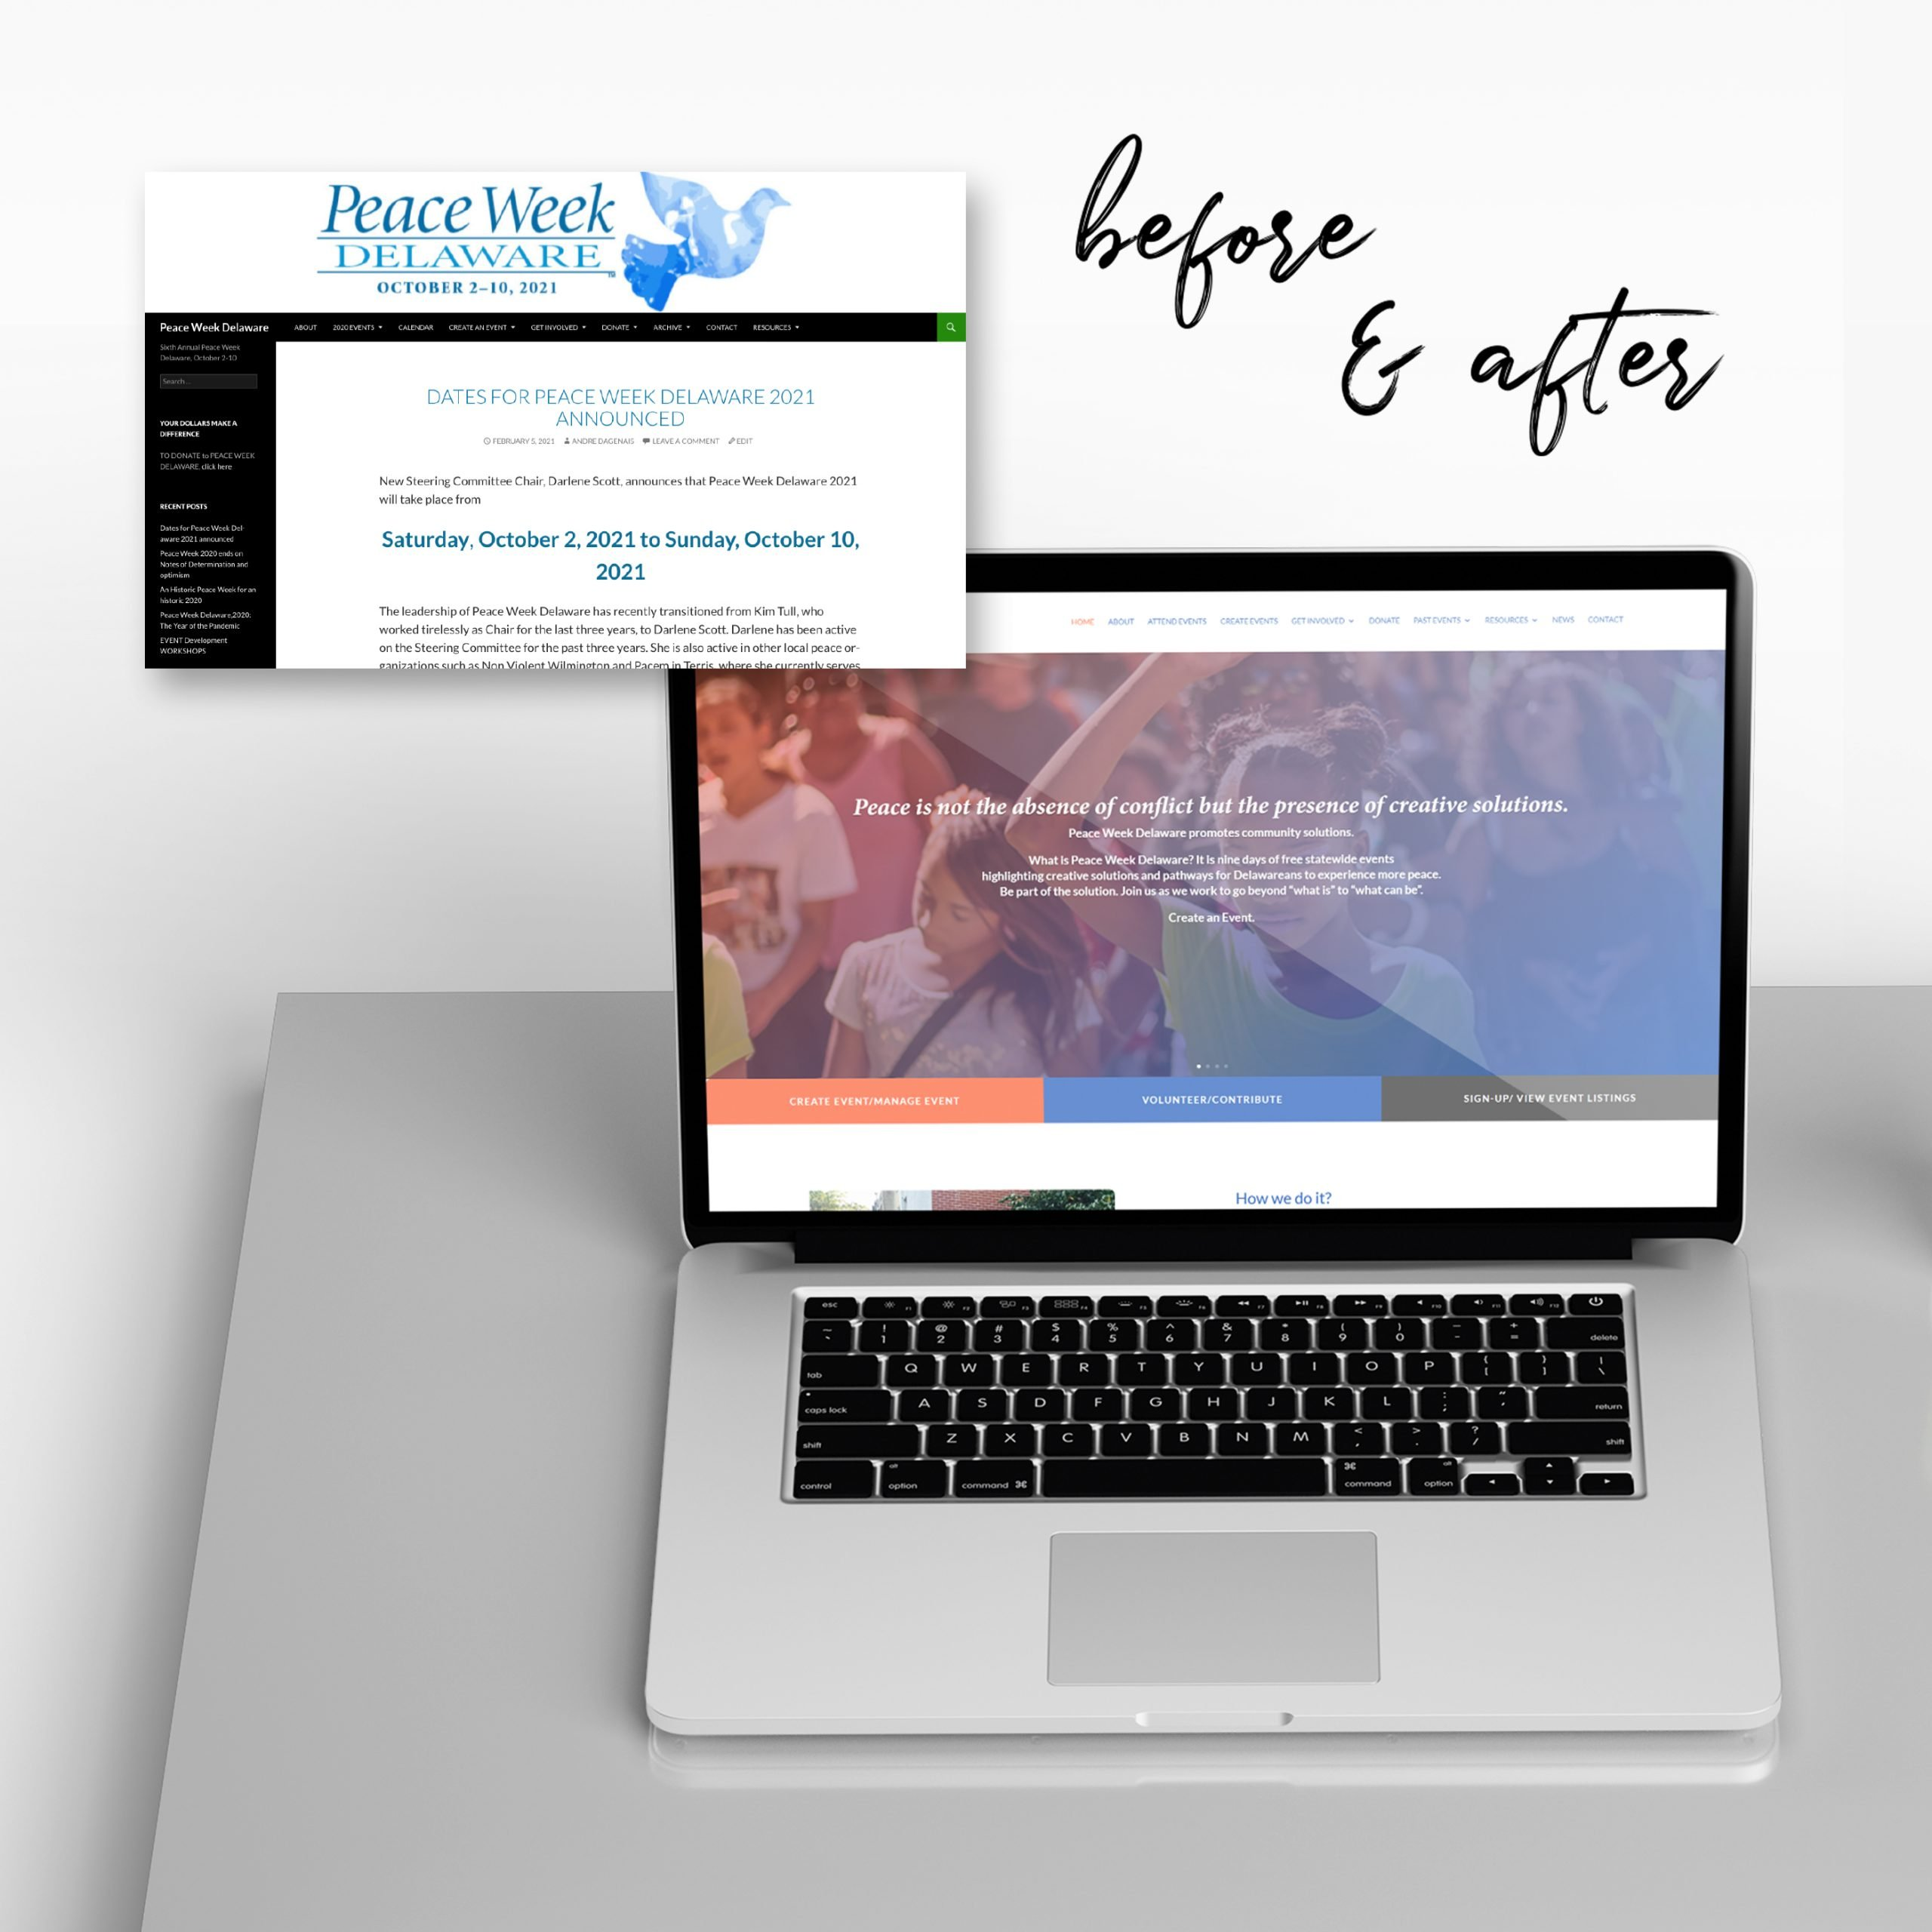 Website before and after by BrandSwan, a Delaware branding agency